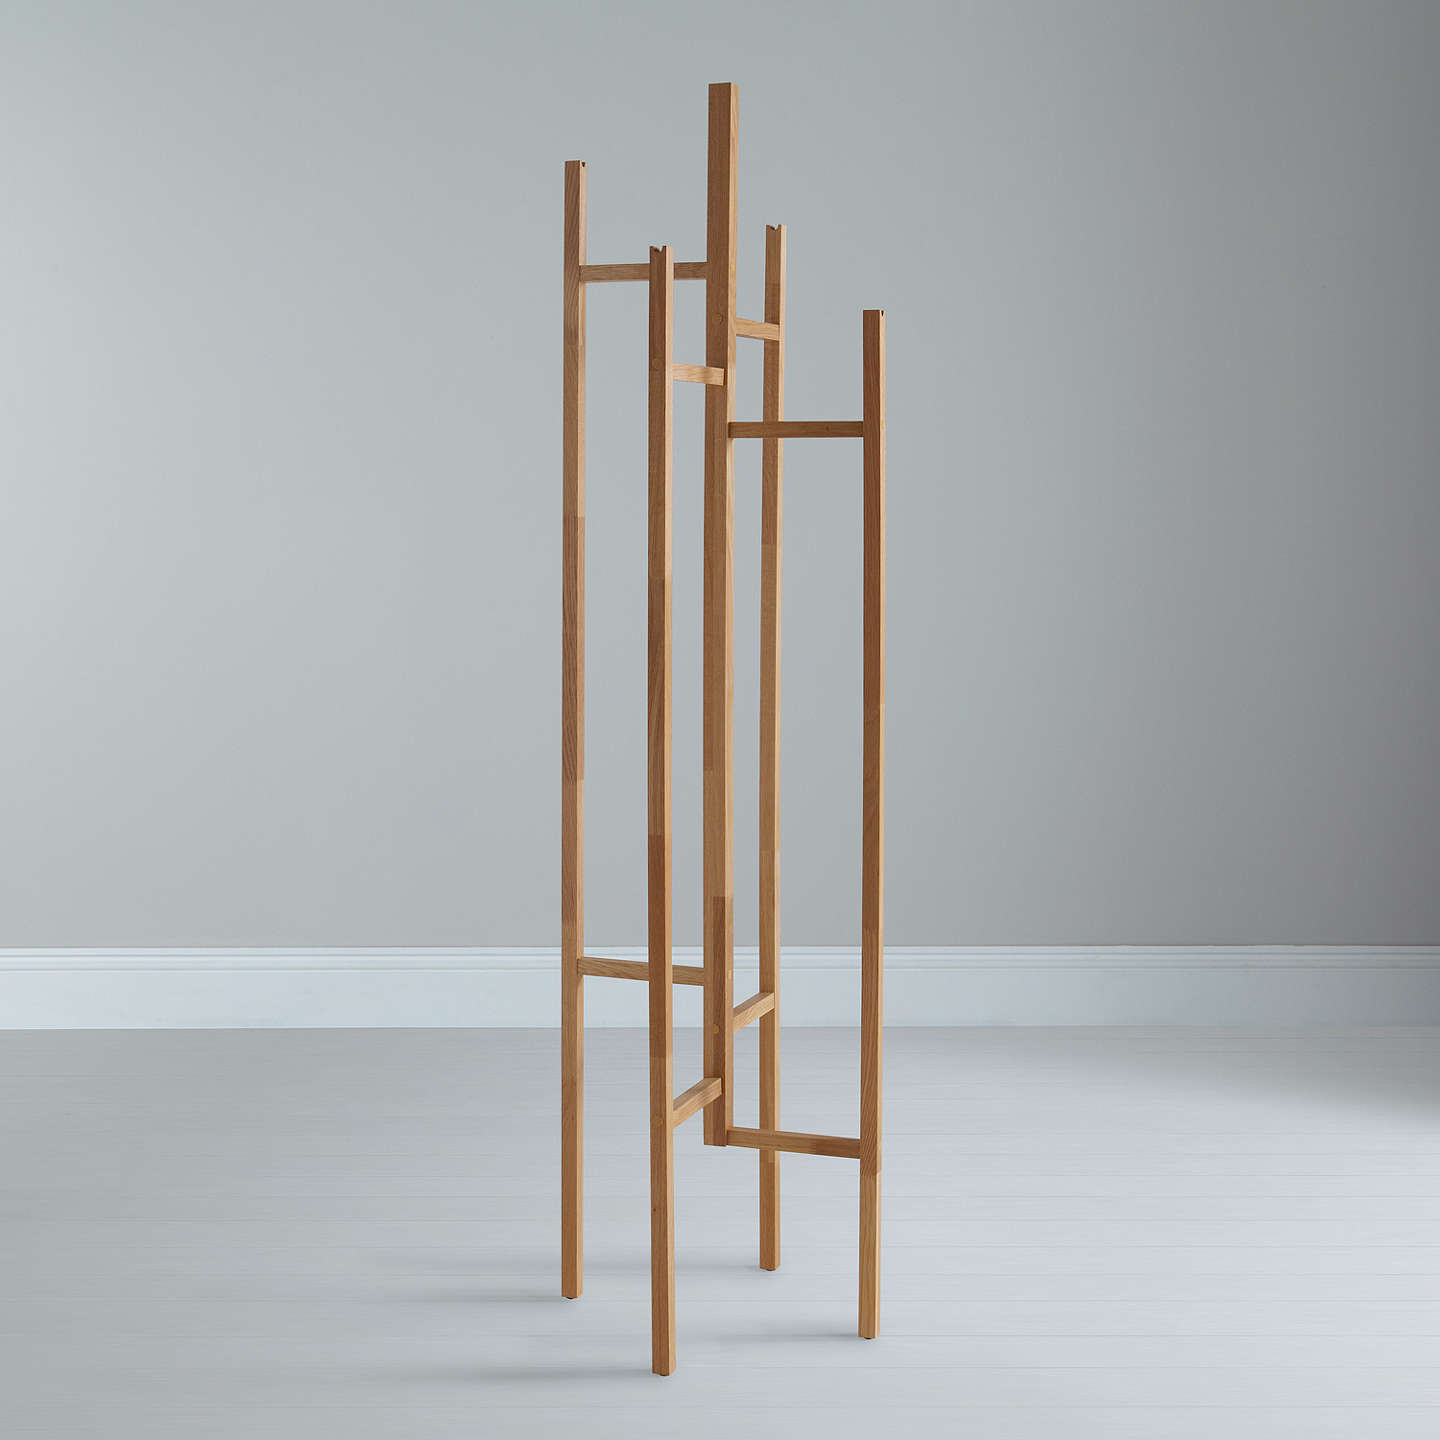 BuyLeonhard Pfeifer for House by John Lewis Eigen Coat Stand Online at johnlewis.com